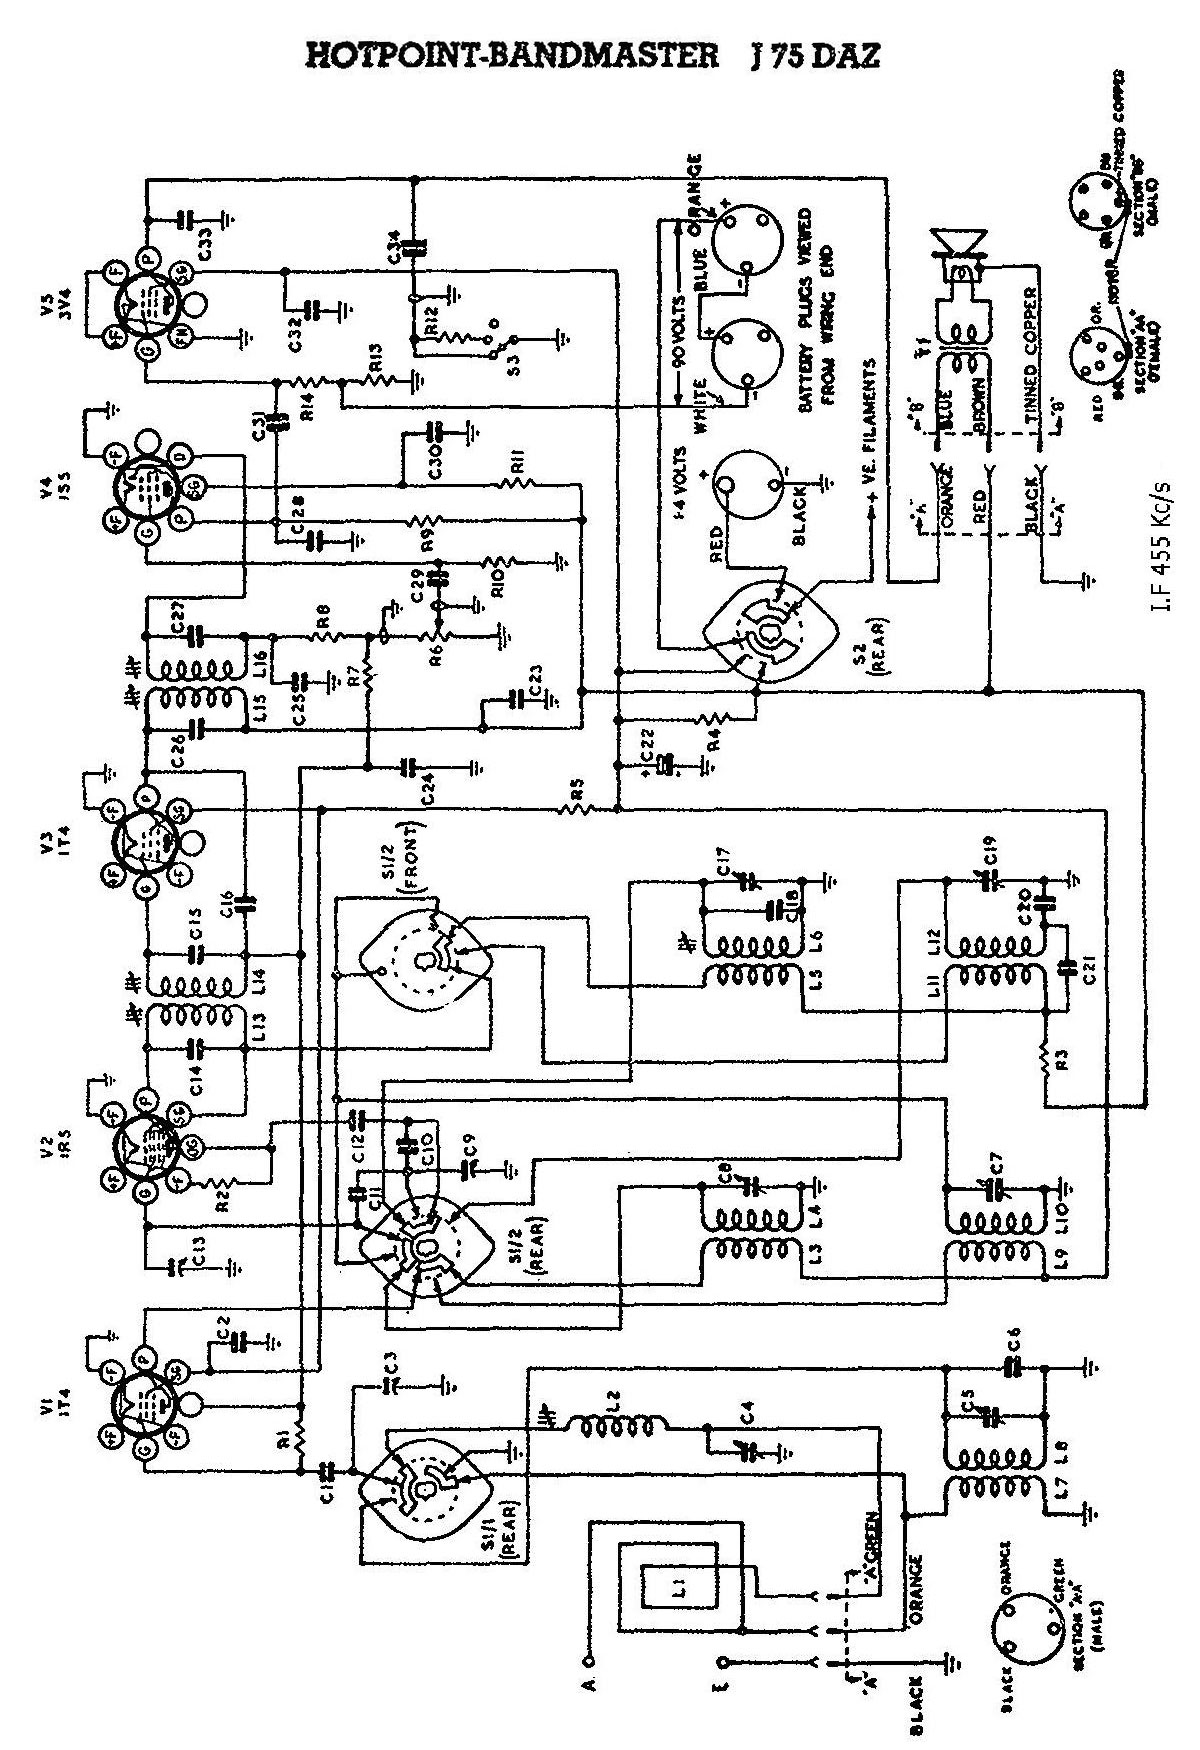 wiring diagram for ge monogram refrigerators  wiring  free engine image for user manual download